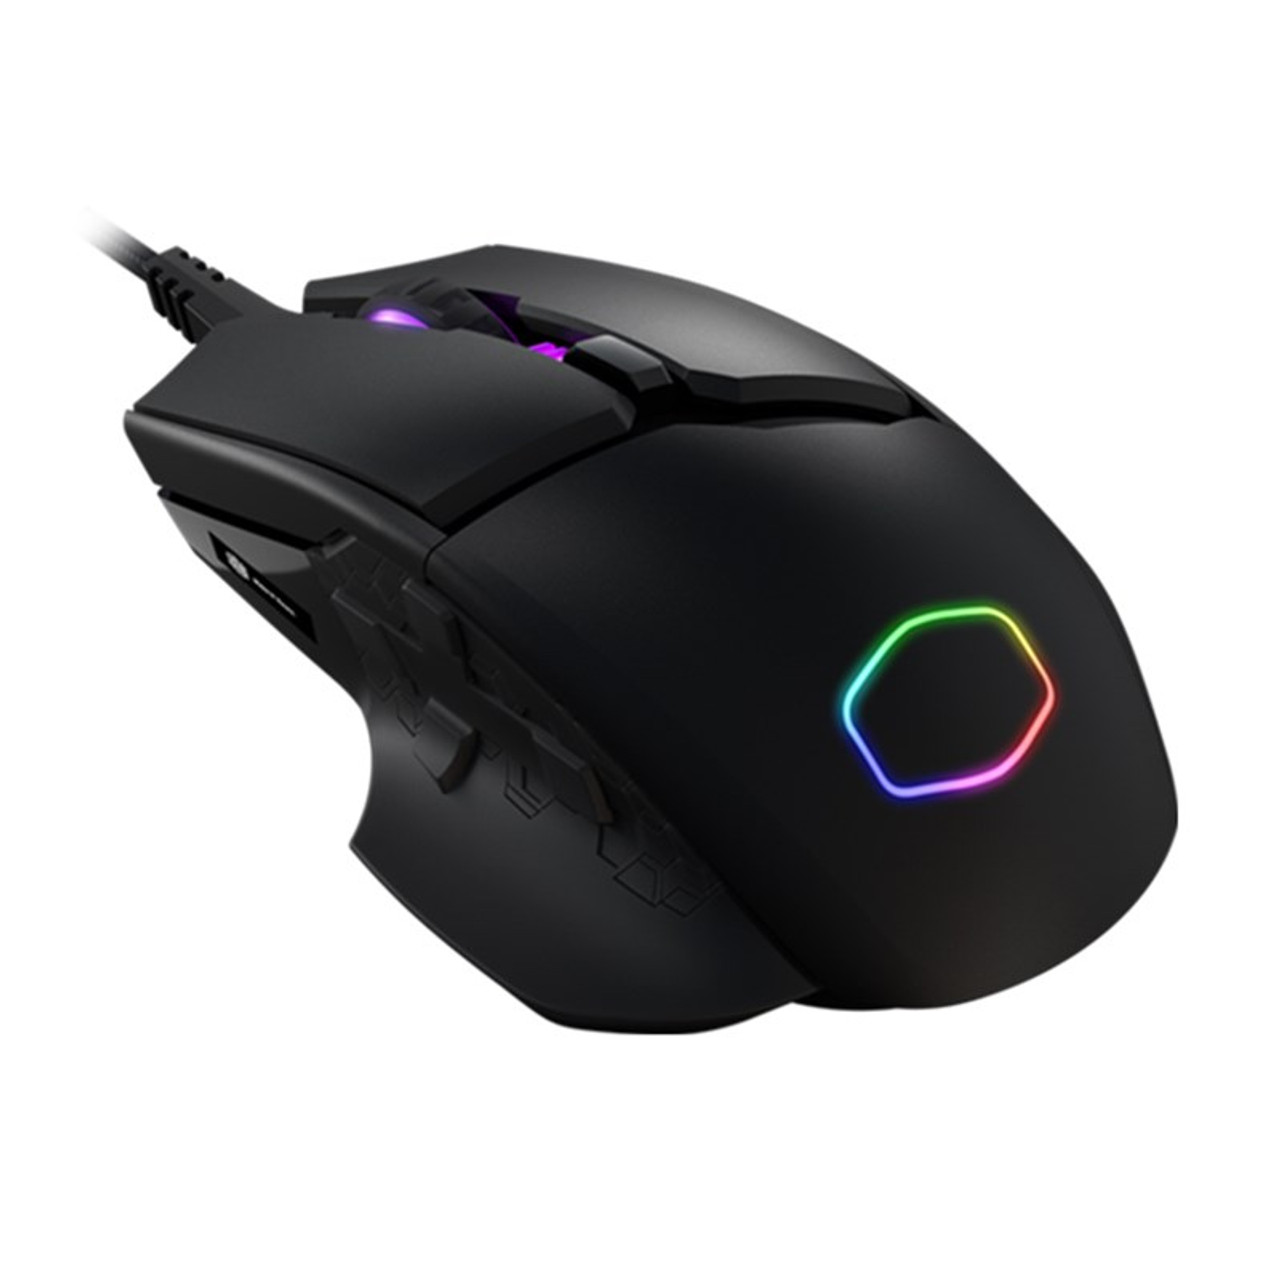 Product image for CoolerMaster MasterMouse 830 RGB Optical Gaming Mouse | CX Computer Superstore